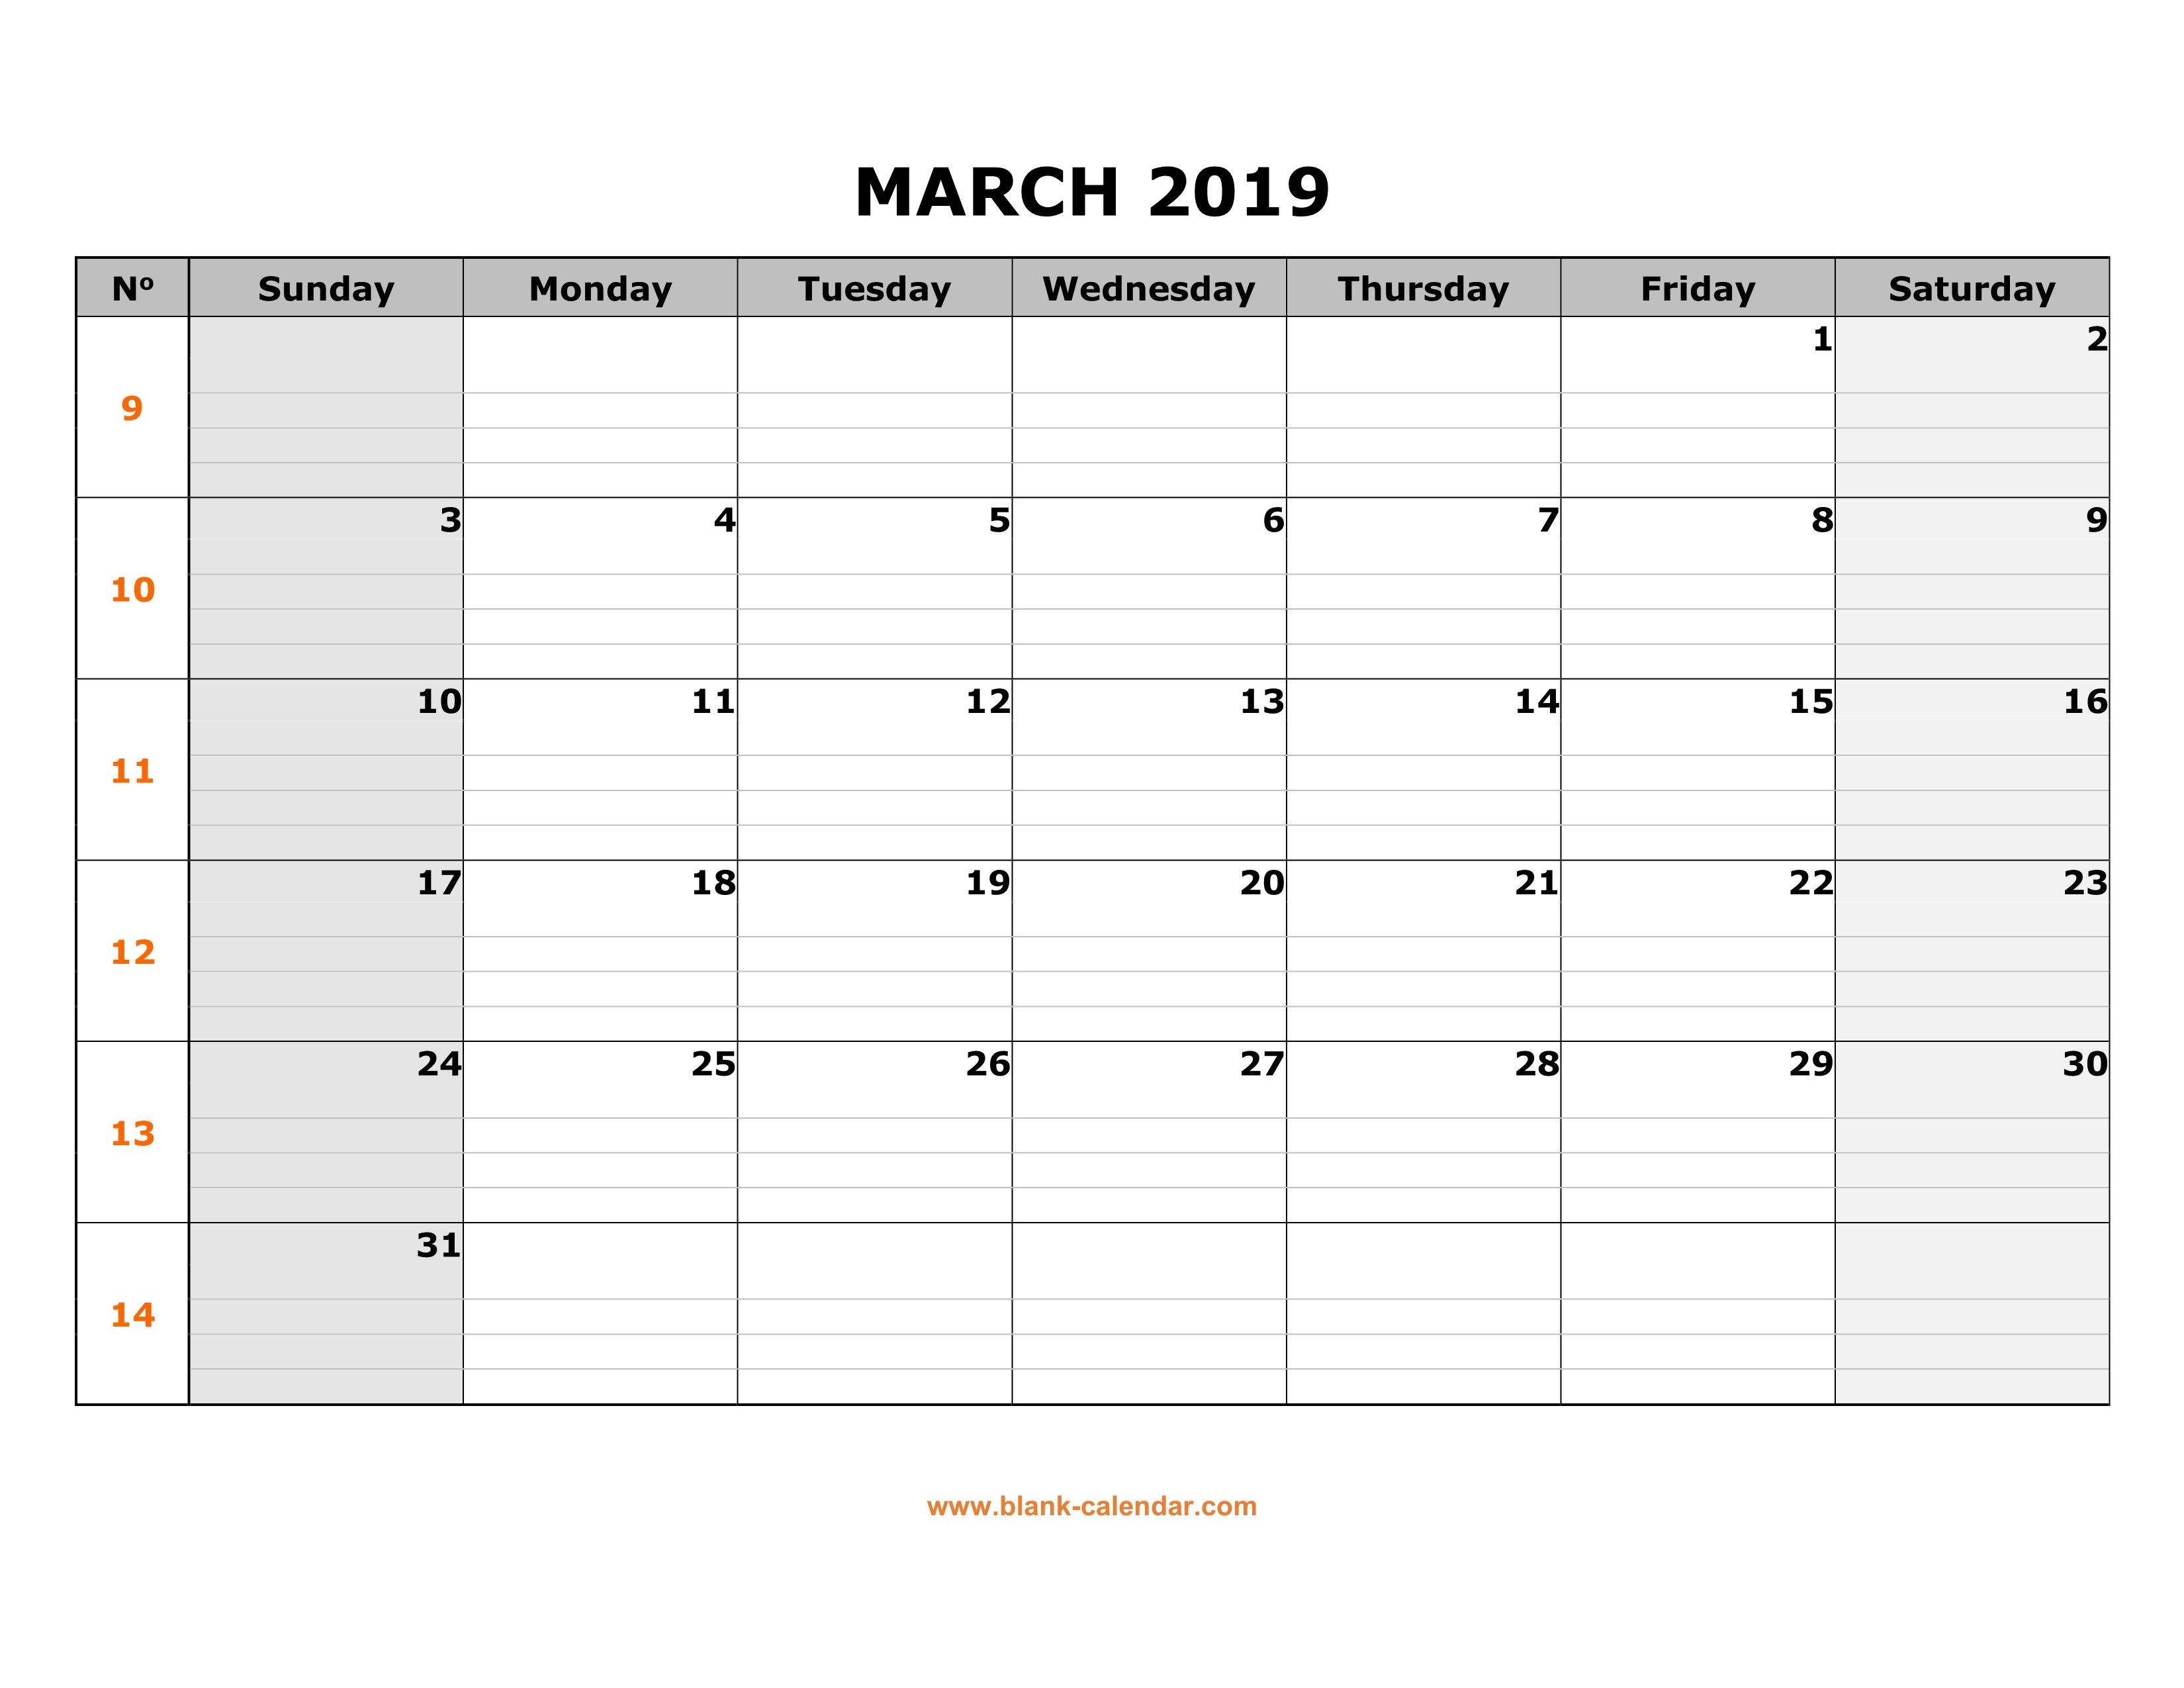 March Calendar 2019 Más Populares Free Download Printable March 2019 Calendar Large Box Grid Space Of March Calendar 2019 Más Populares February March Calendar 2019 2018 Printable Calendar Store